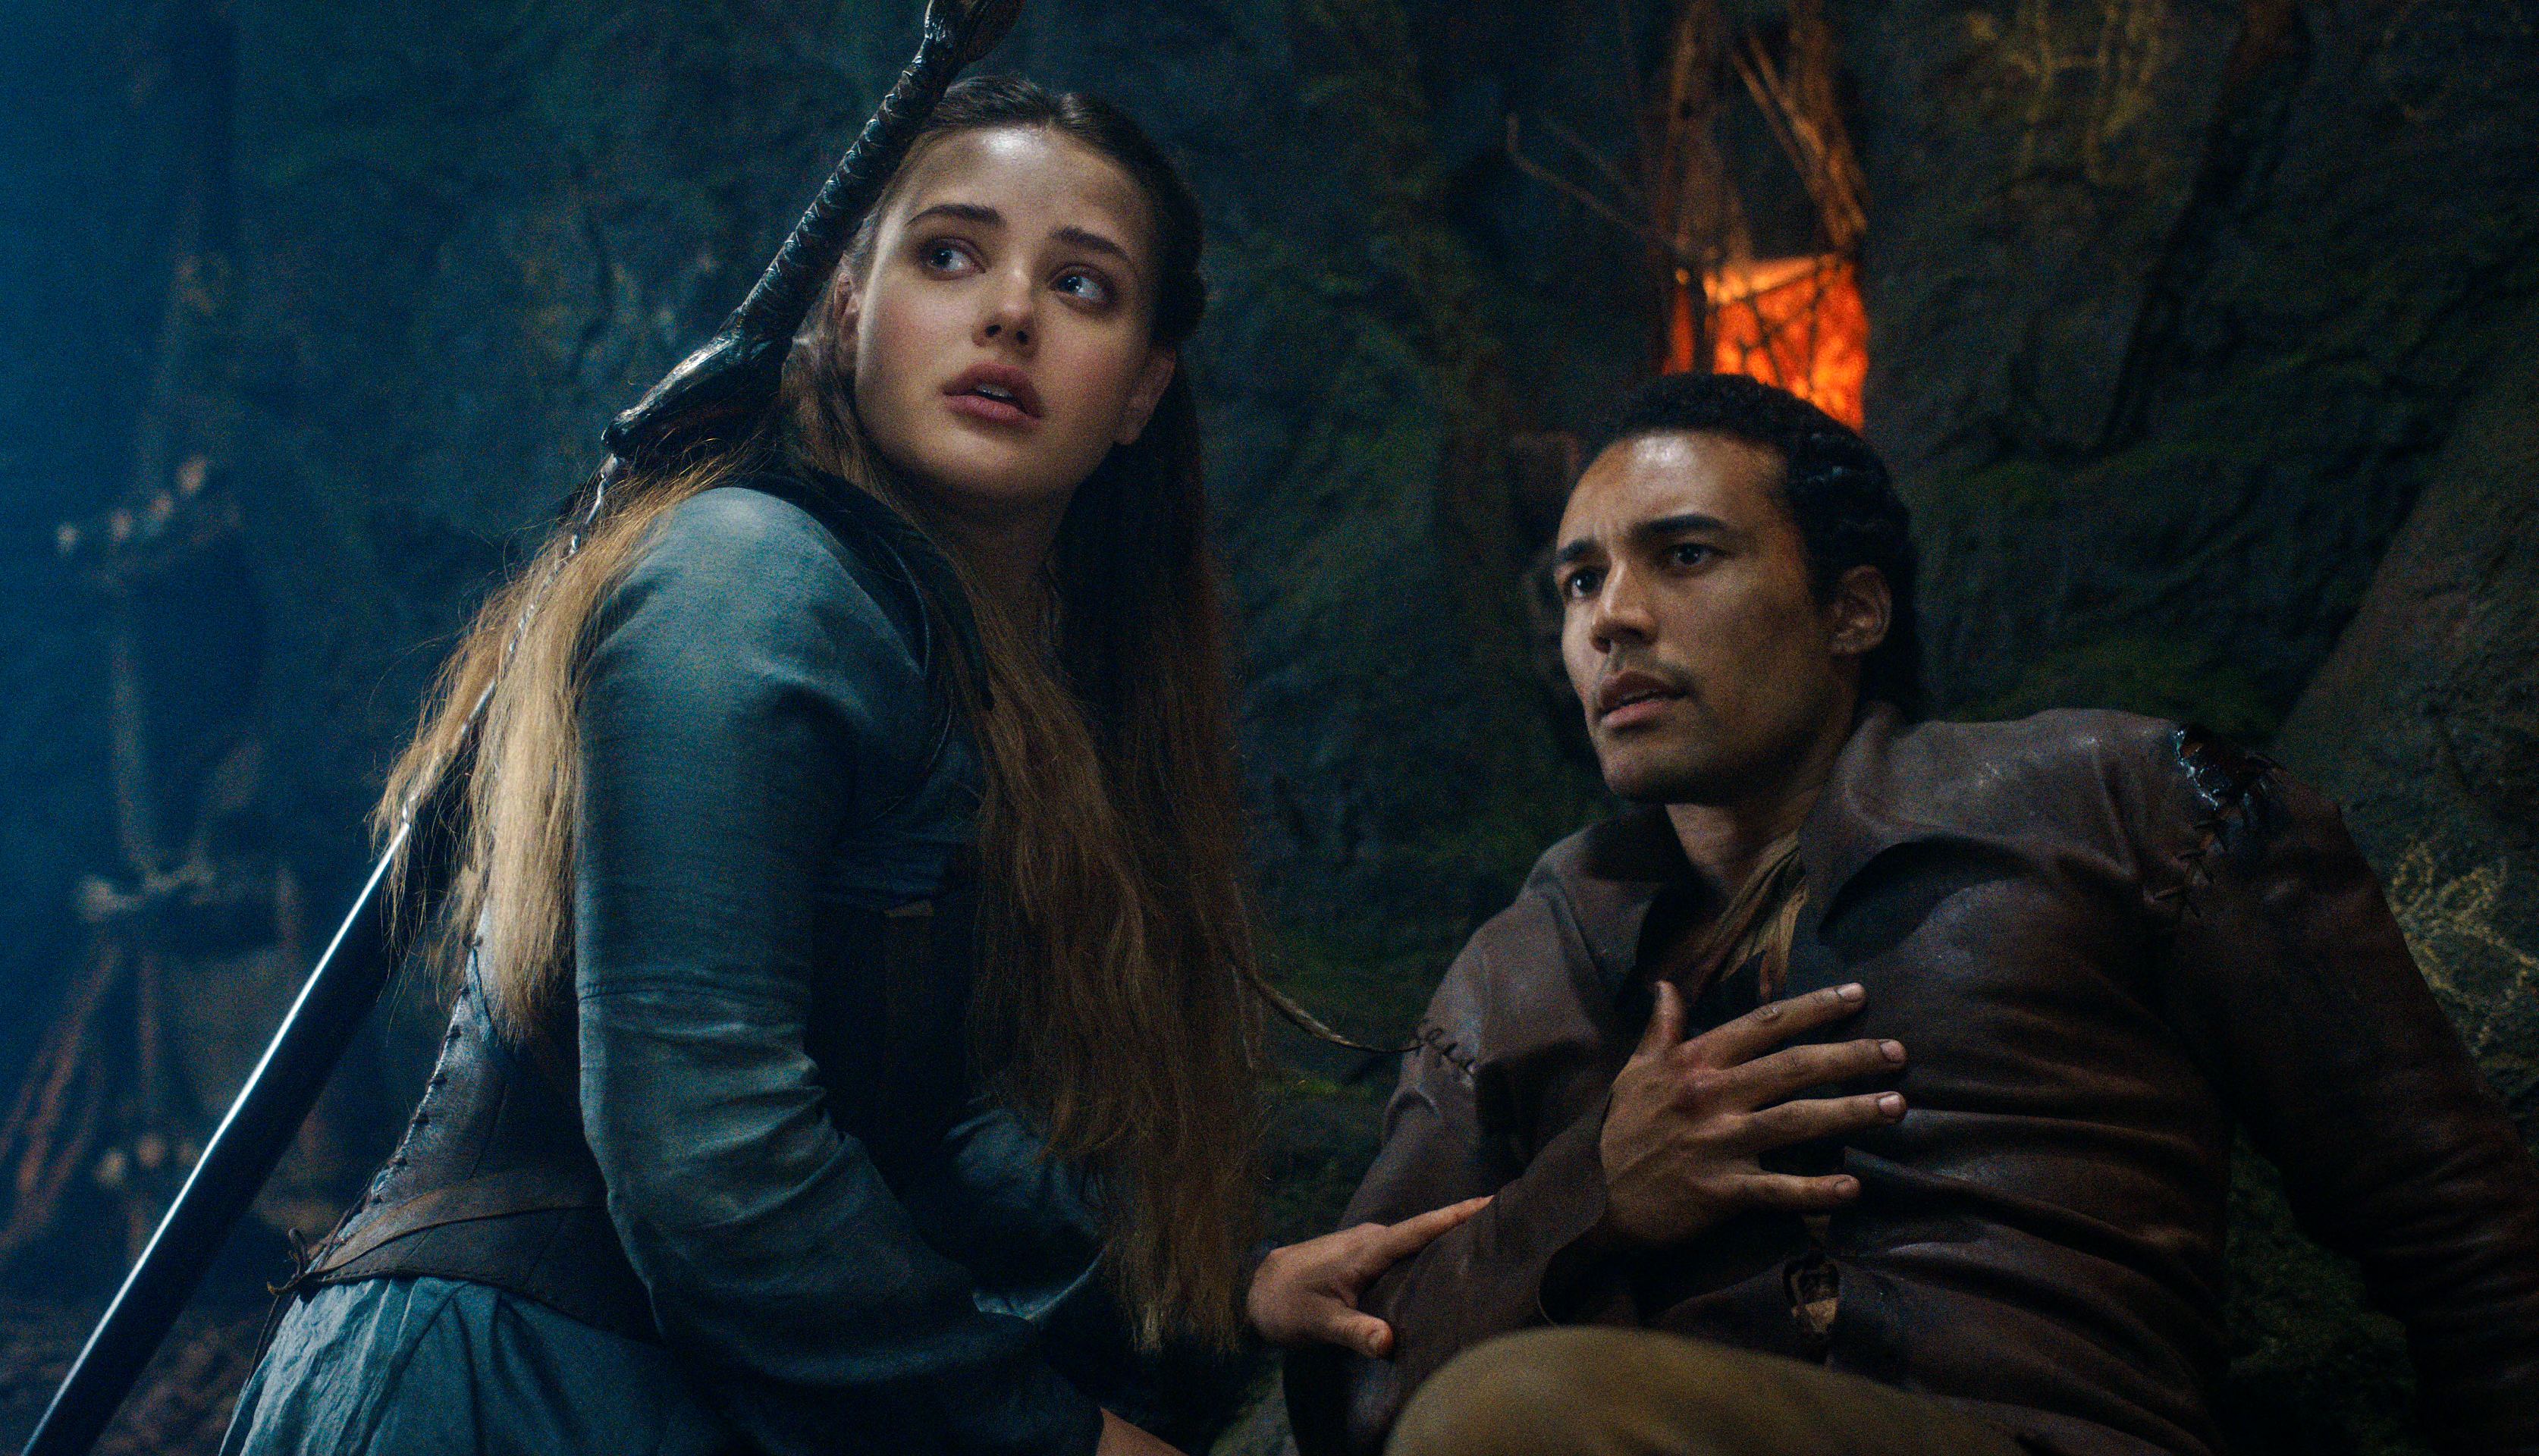 Katherine Langford and Devon Terrell in 'Cursed'